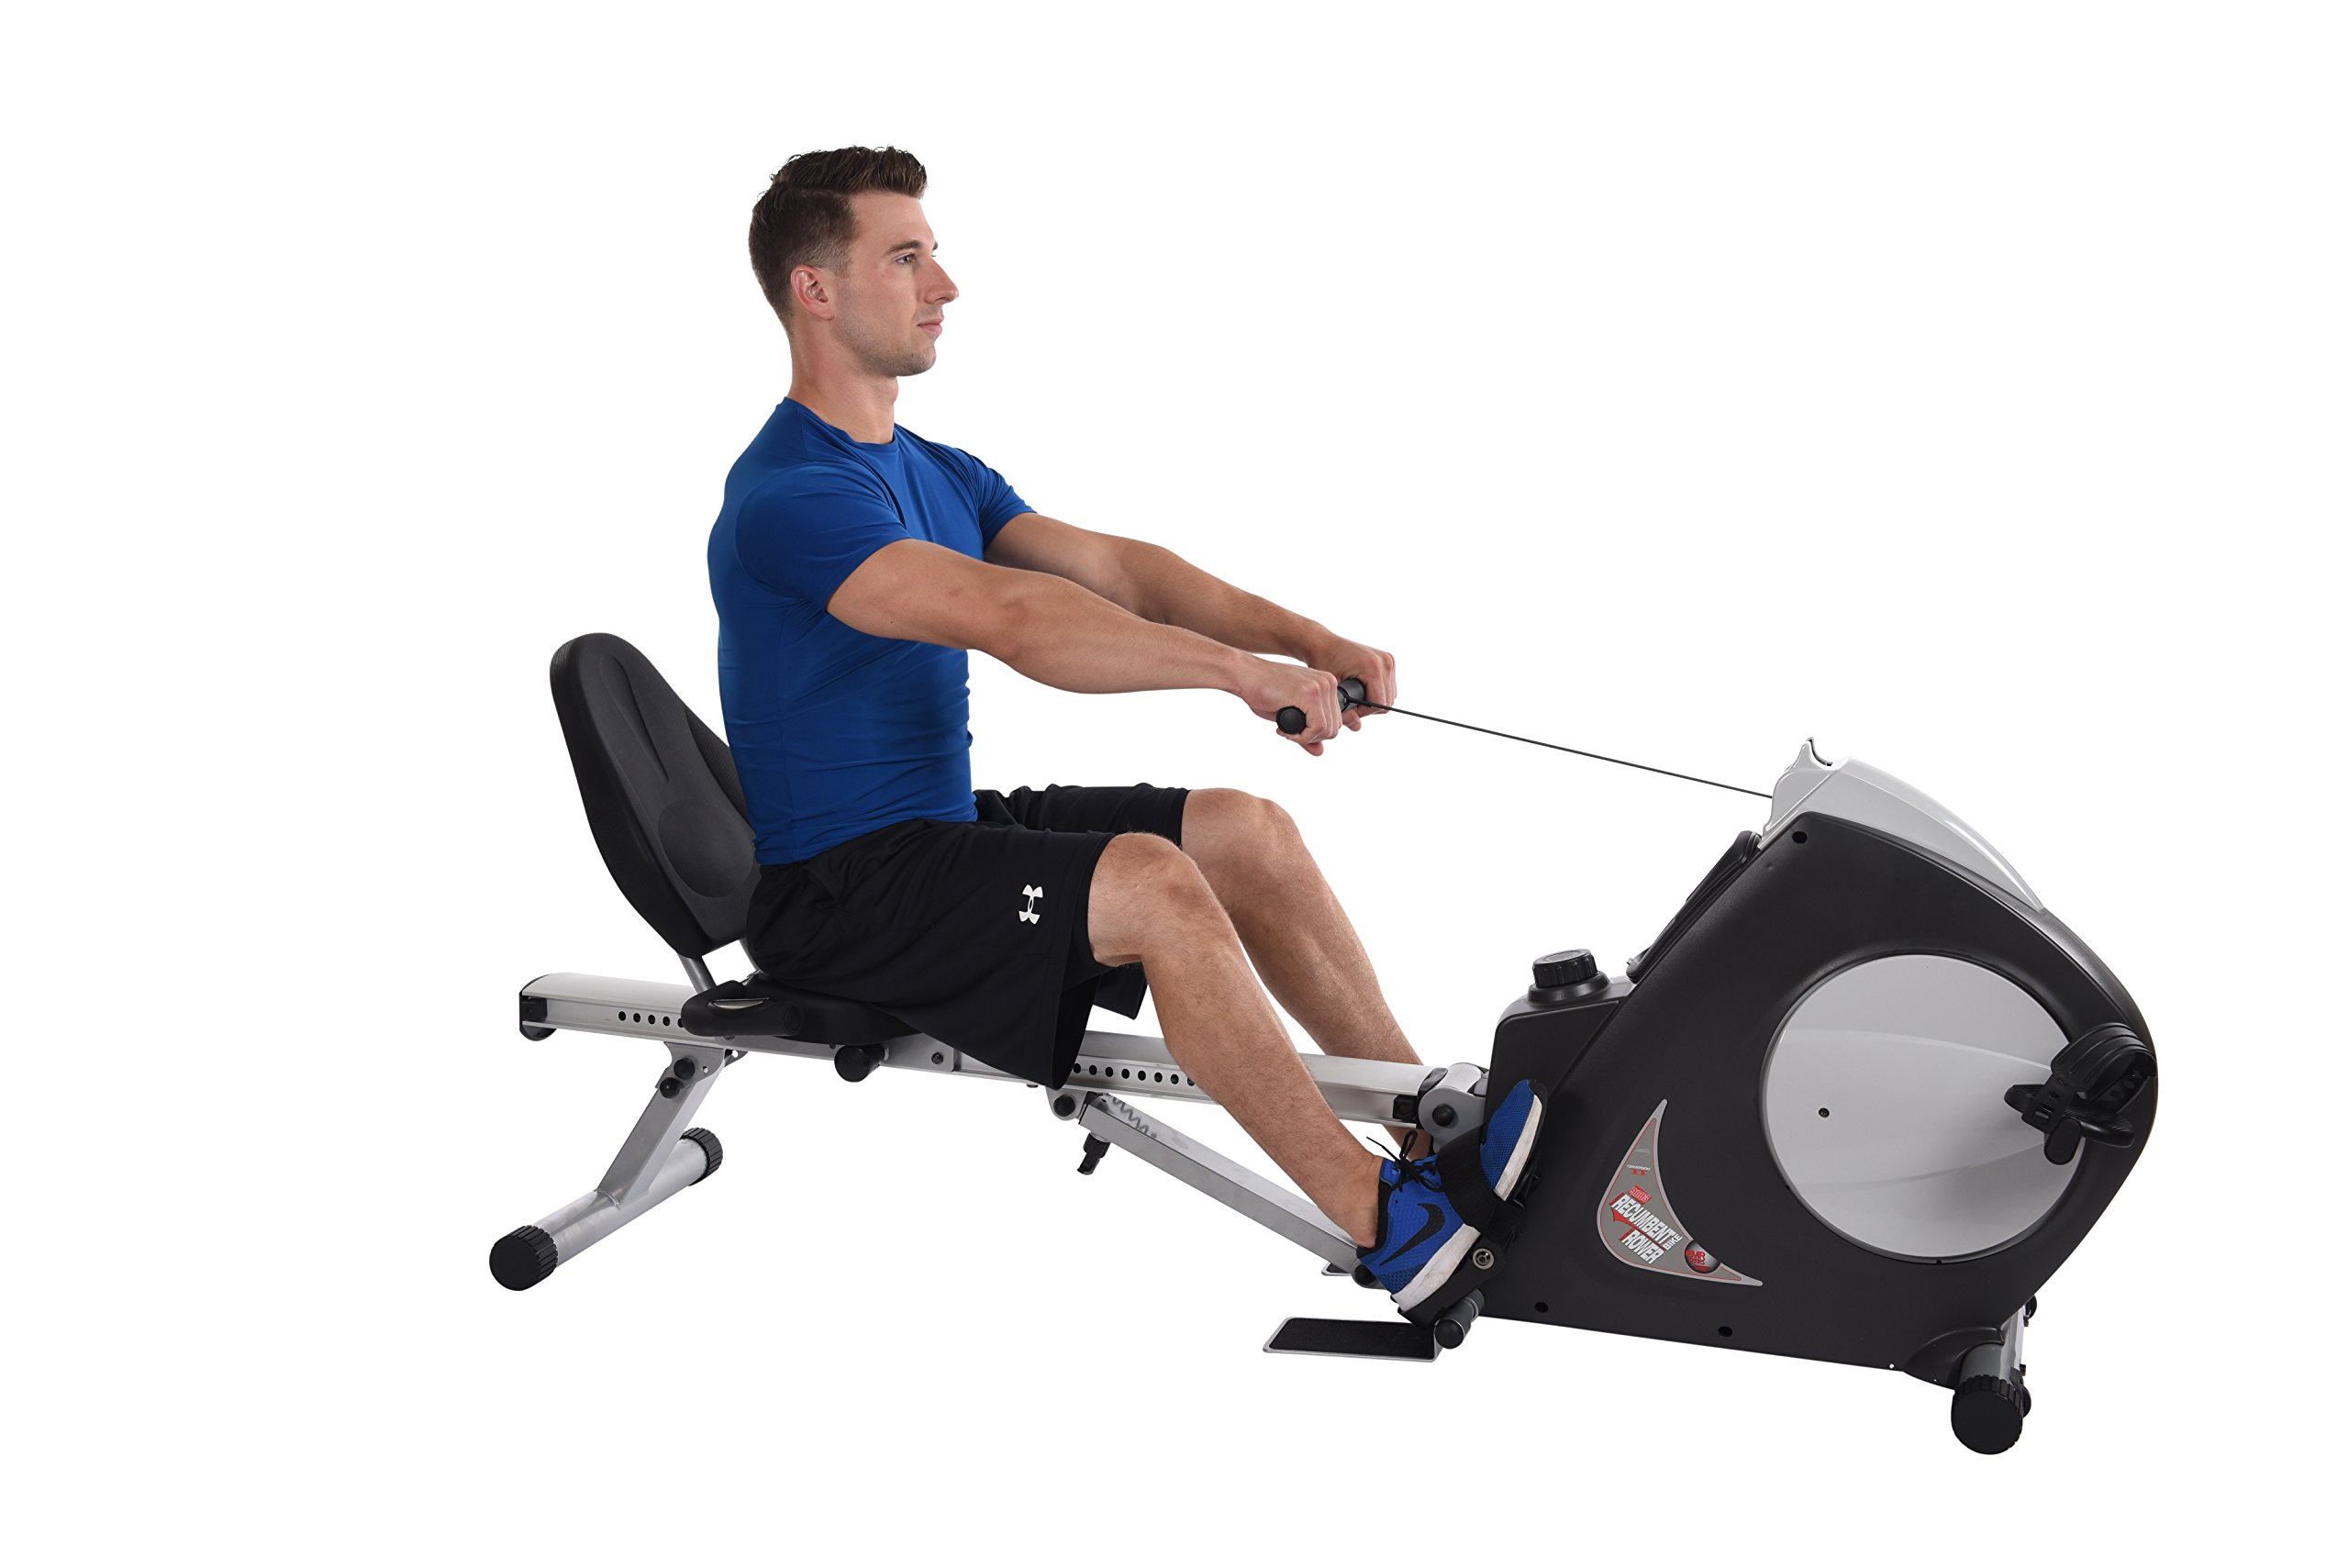 Stamina 15-9003 Deluxe Conversion II Recumbent / Rower by Stamina (Image #4)